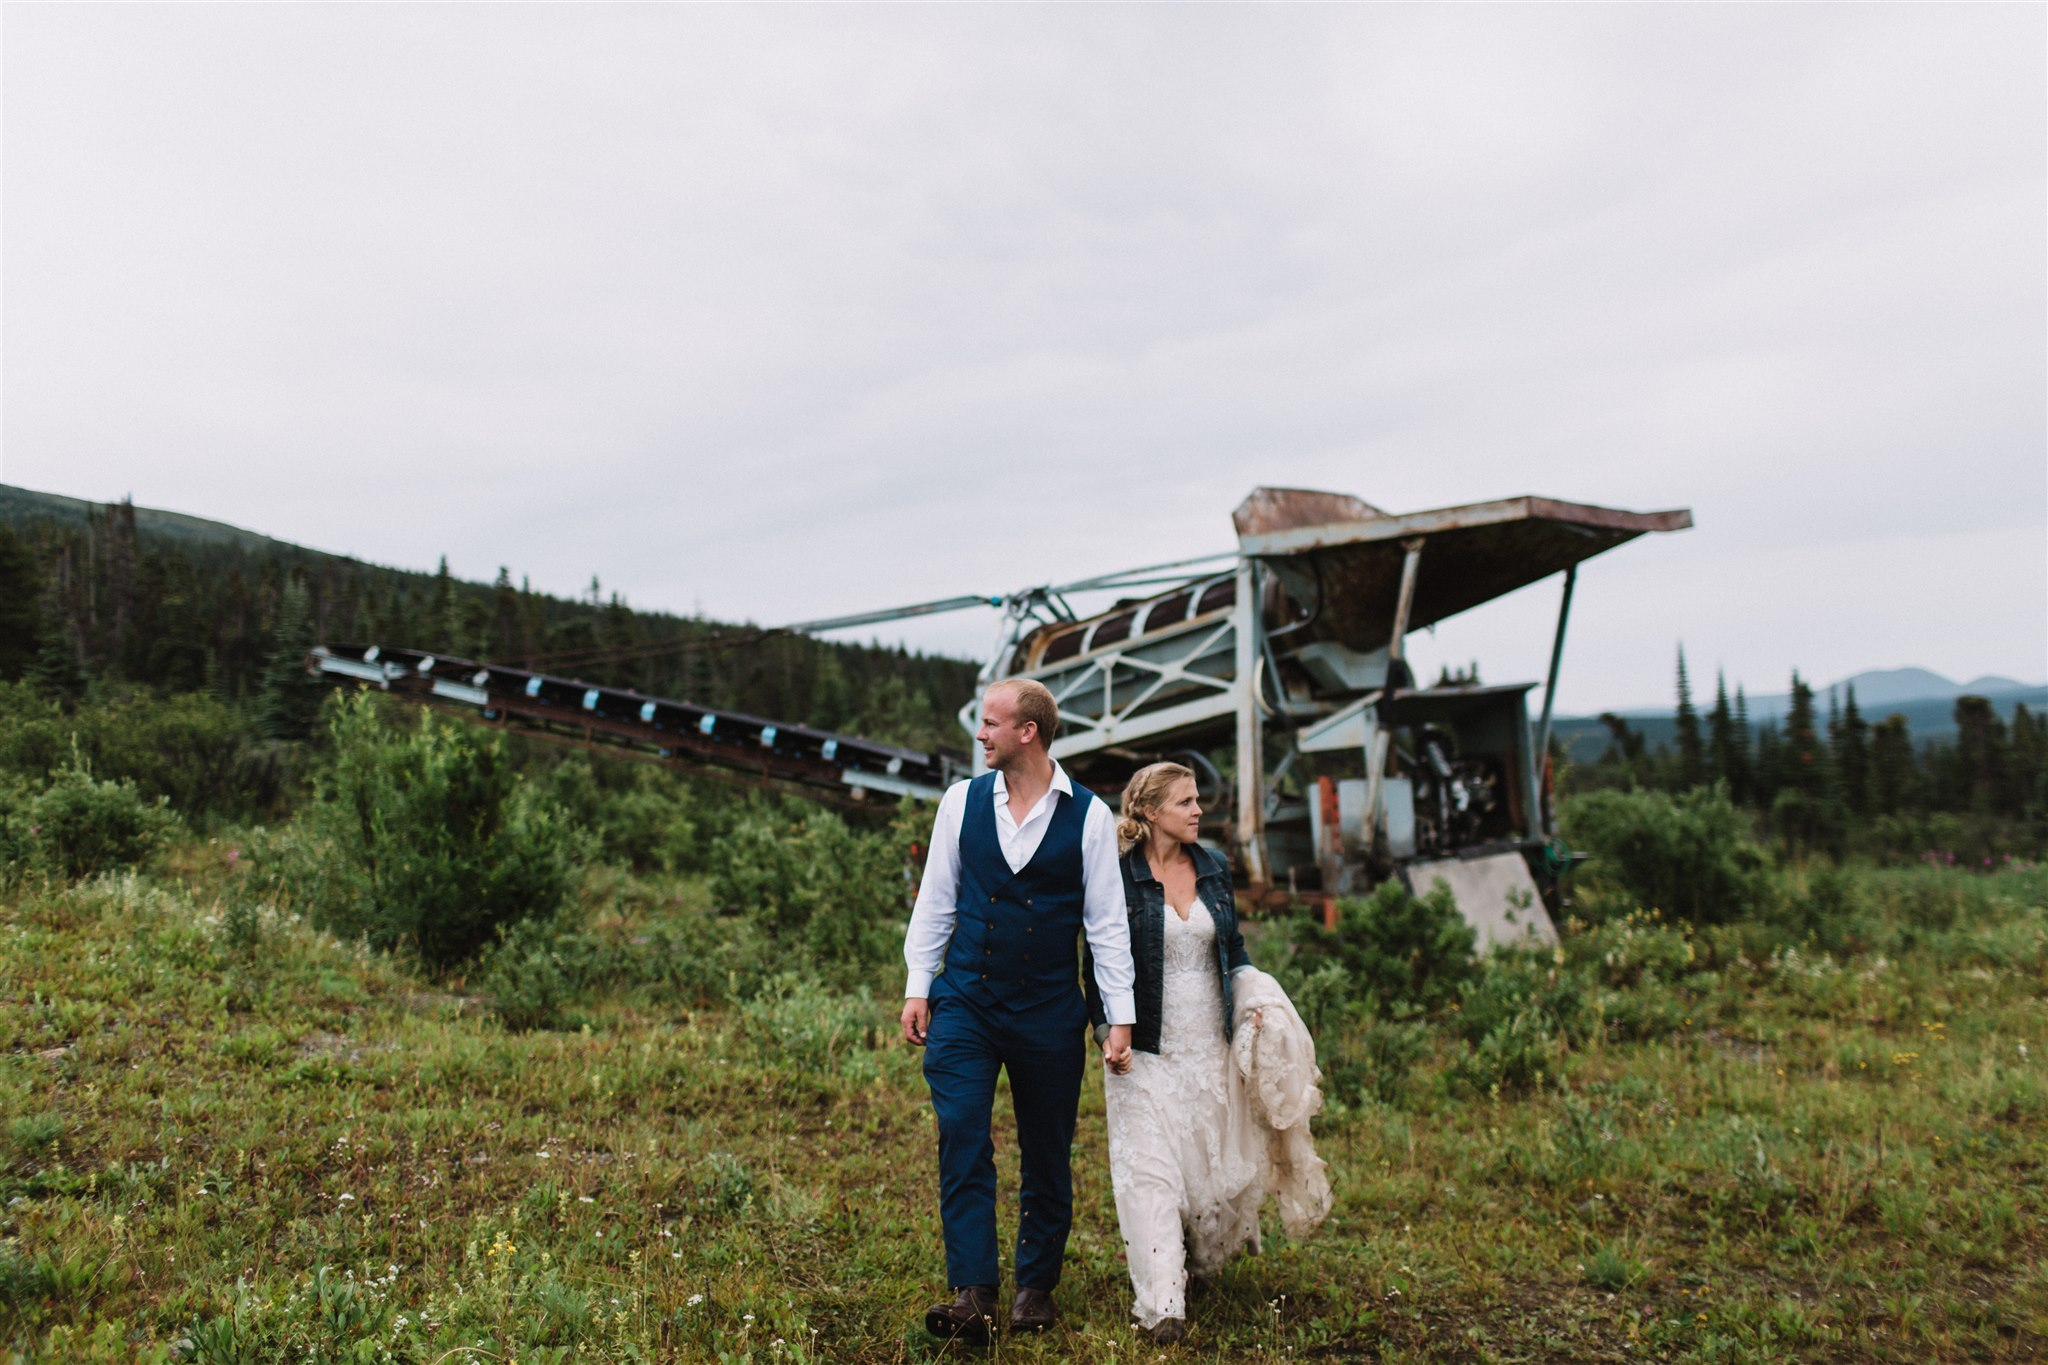 Wedding Photography in historic mining town, Atlin, BC